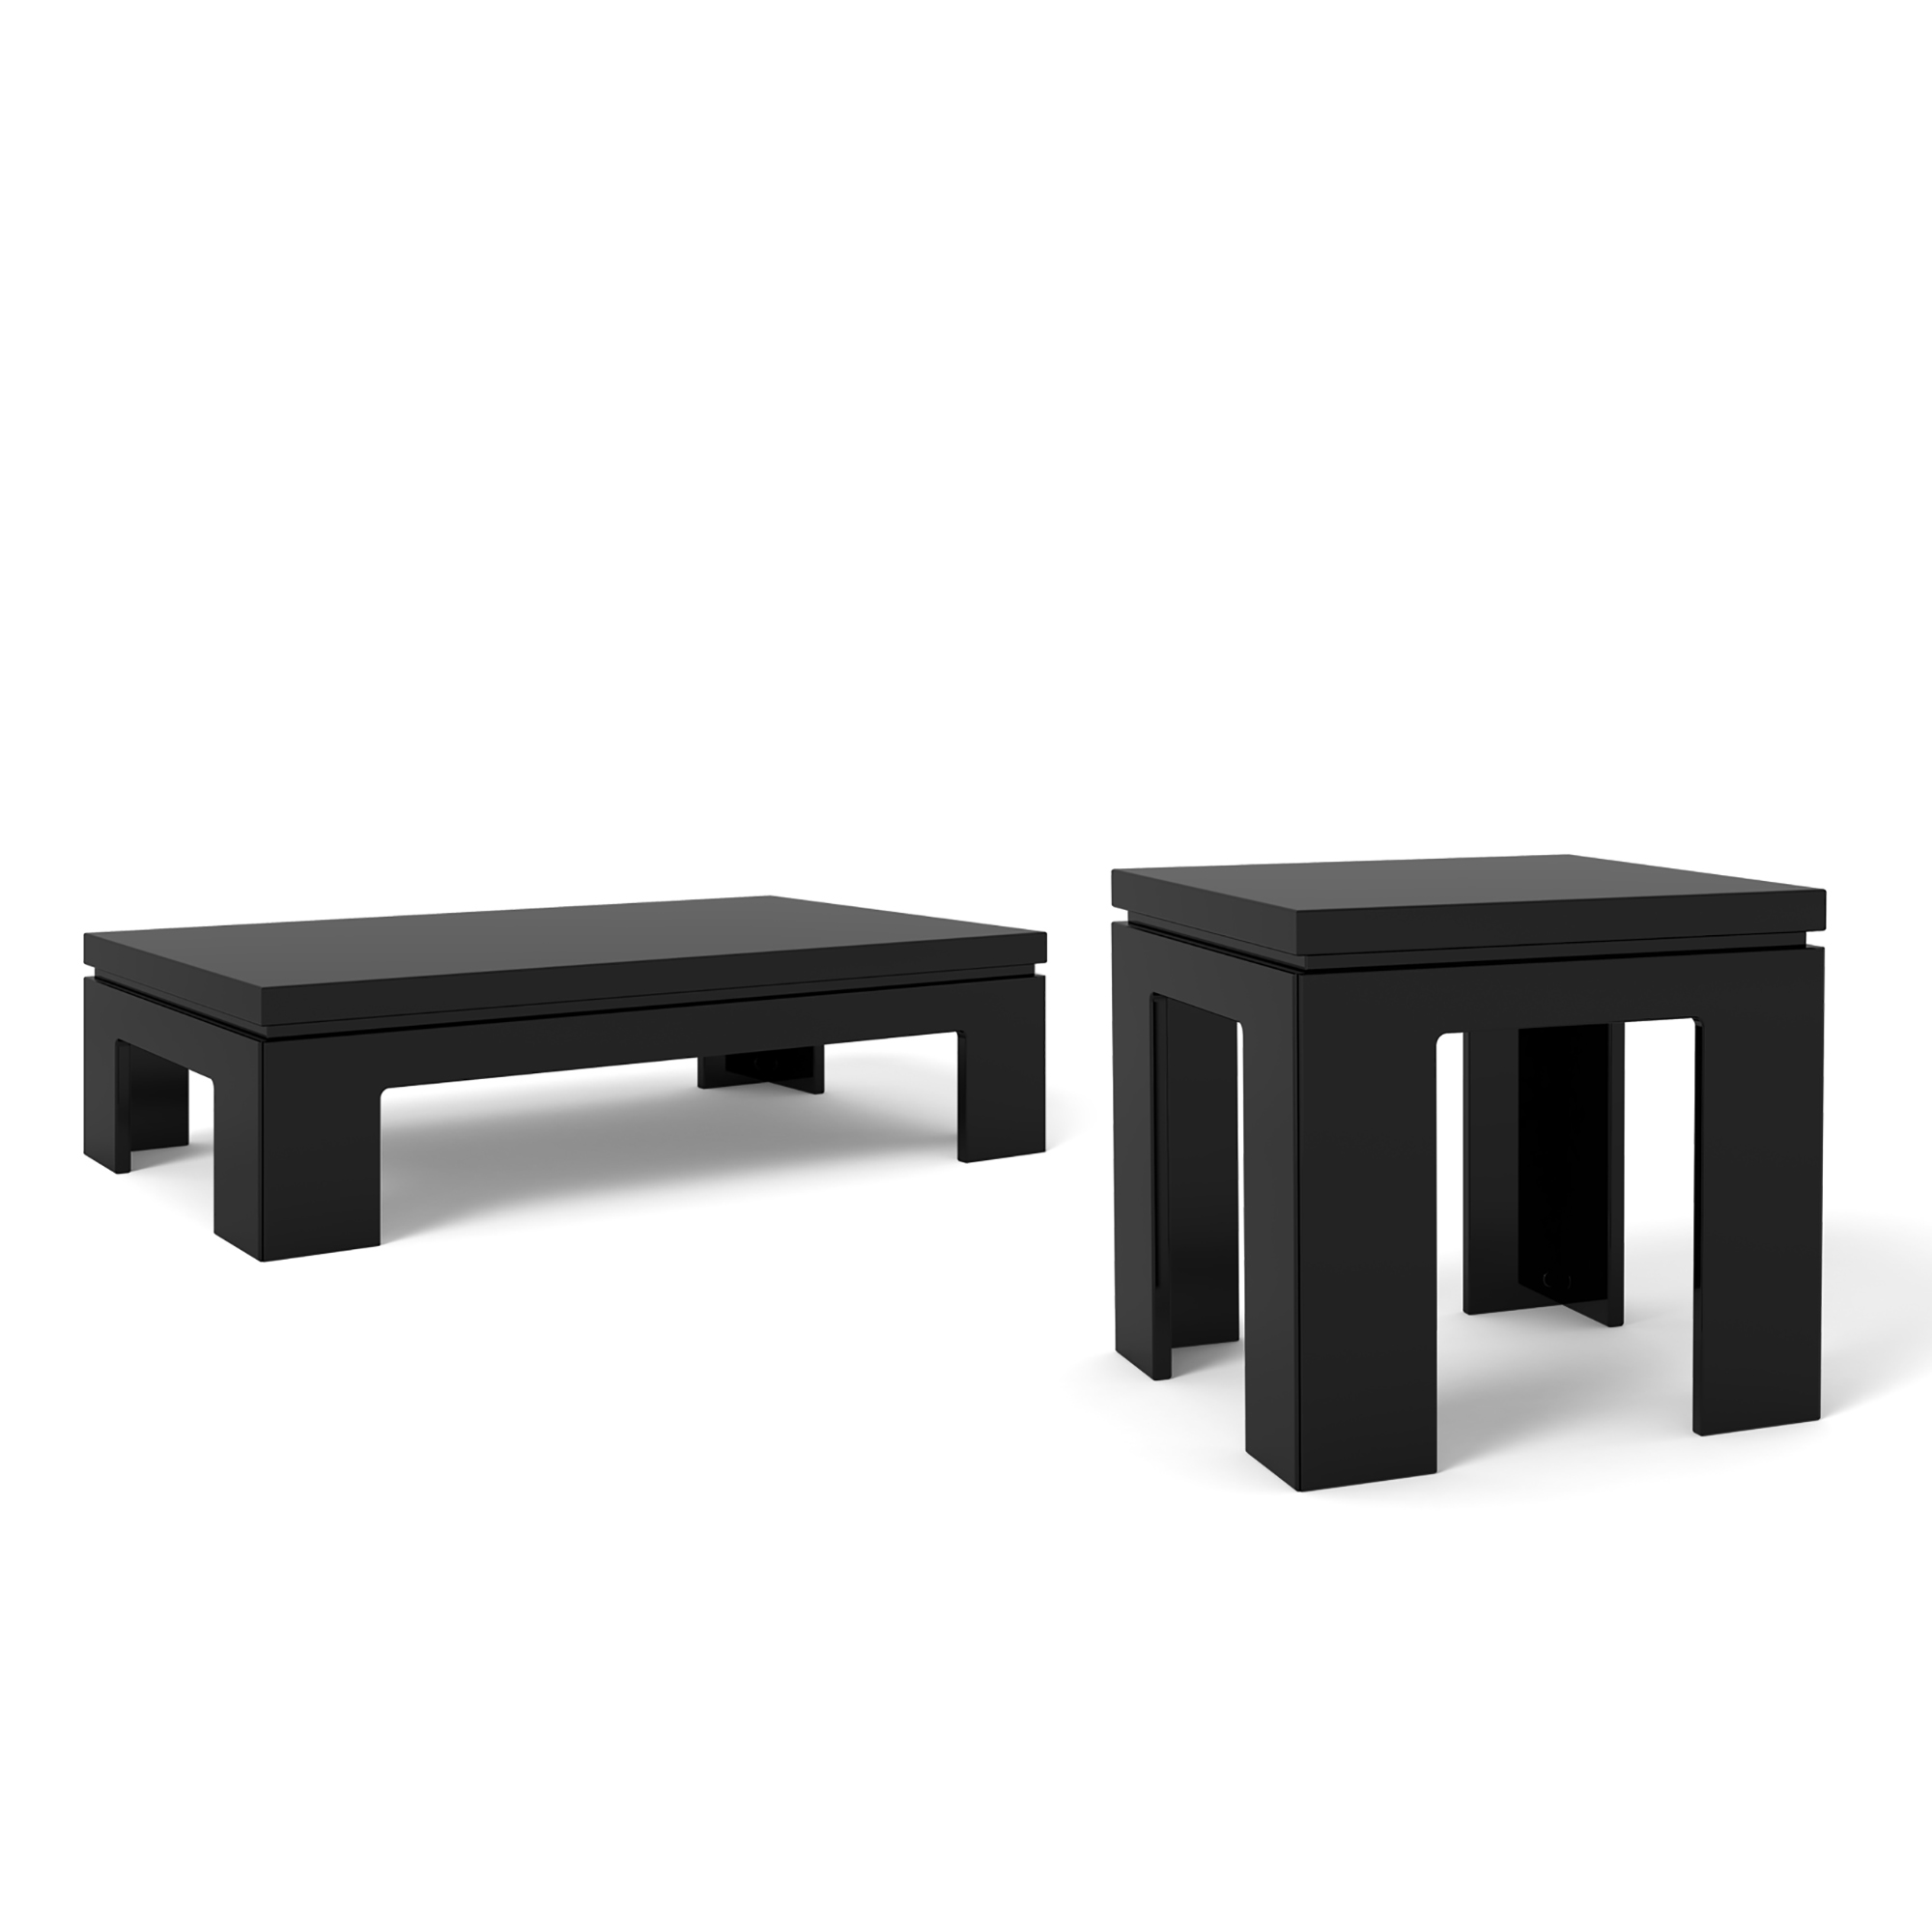 bridge black gloss piece accent table living room set manhattan sets comfort patio cover coastal inspired chandeliers changing dresser with basket drawers round mosaic home goods